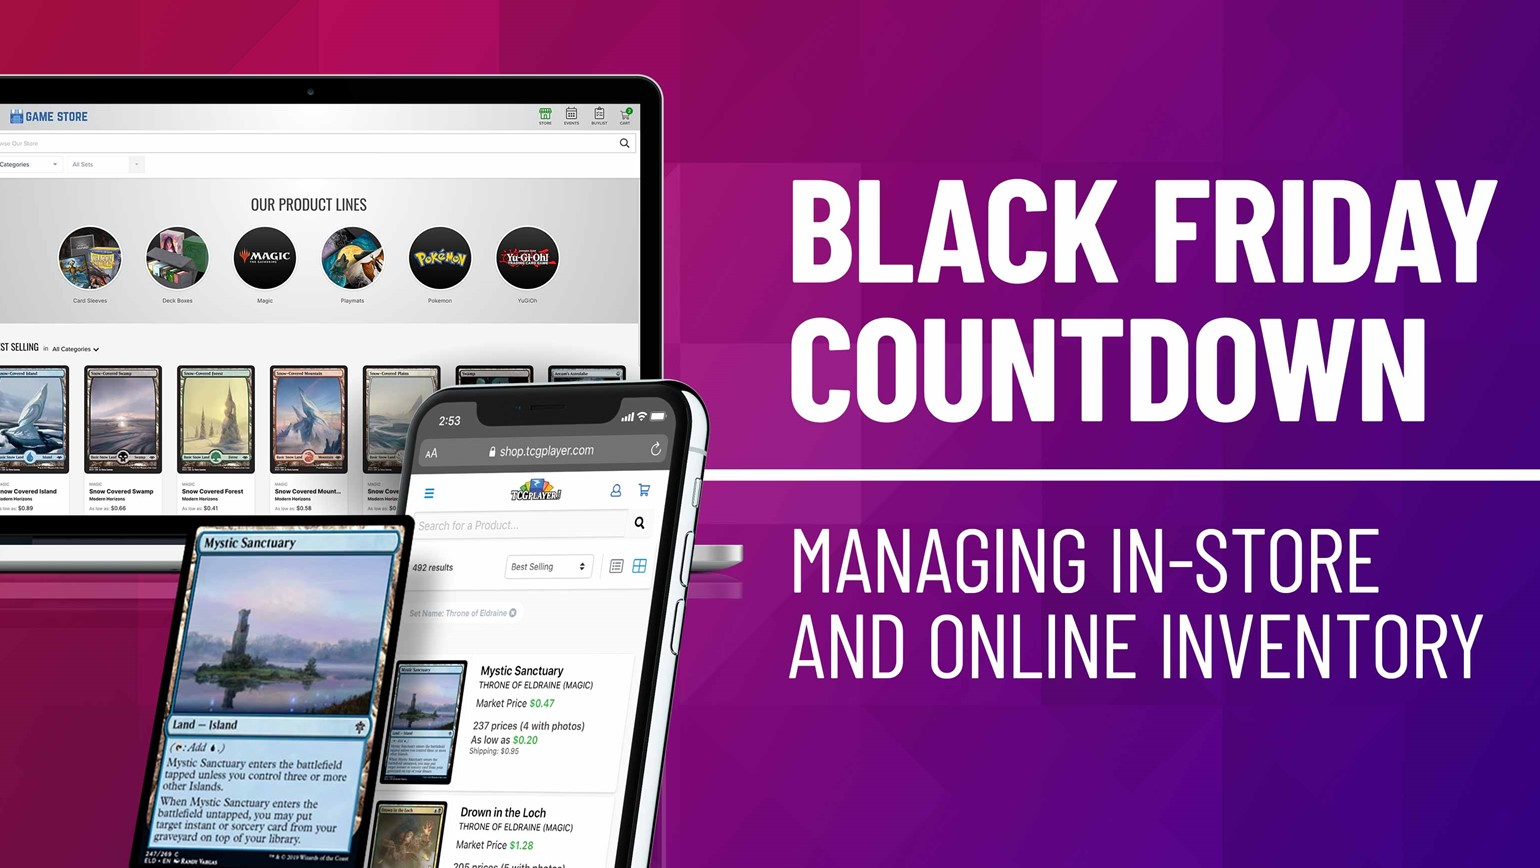 Black Friday Countdown: Managing In-Store and Online Inventory